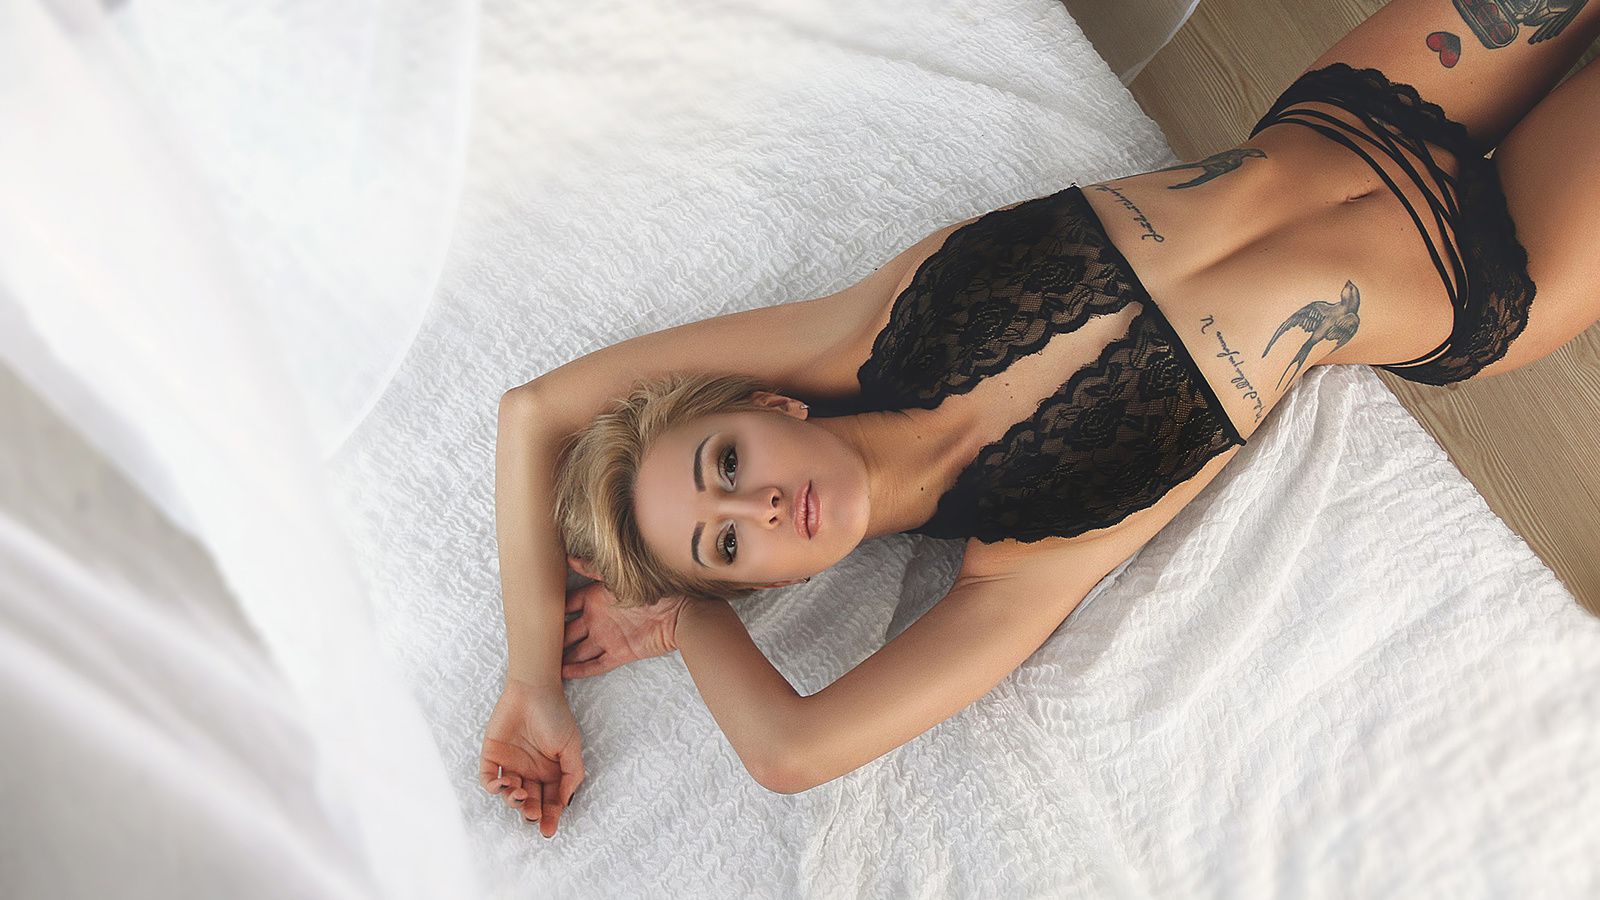 ksenia kostrovskaya, women, blonde, black lingerie, belly, top view, short hair, the gap, hips, brunette, tattoos, armpits, in bed, looking at viewer